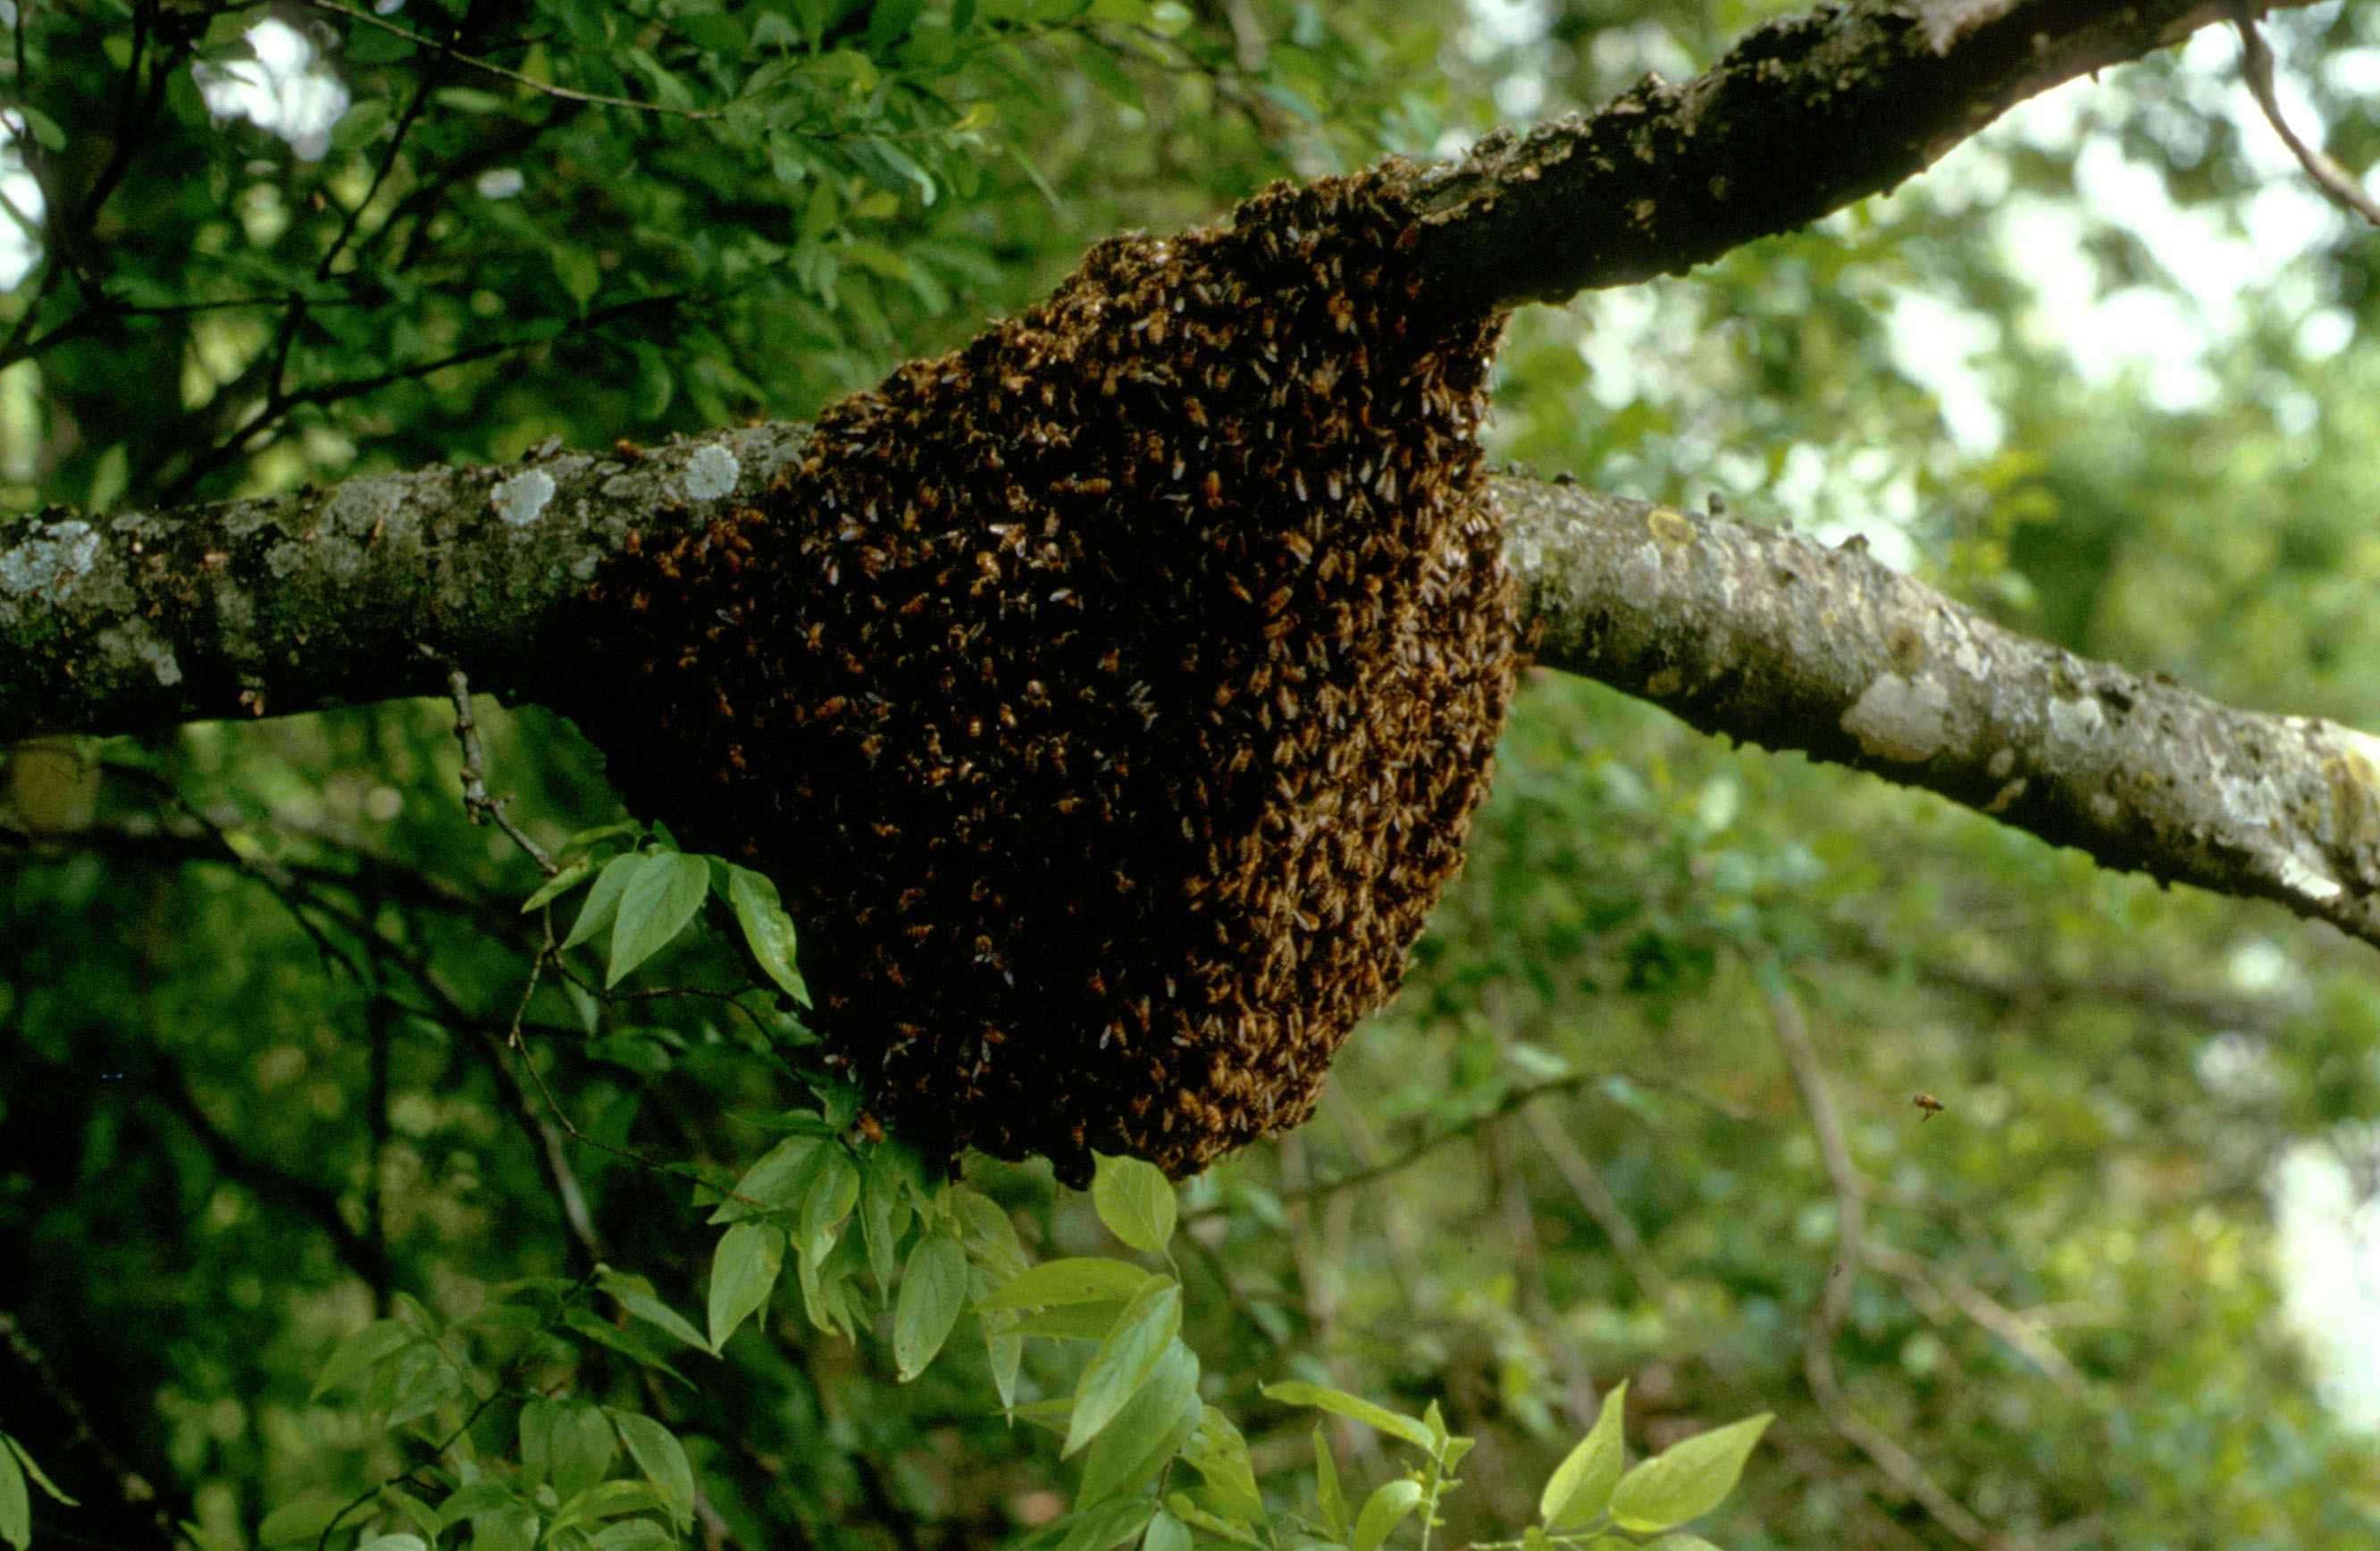 File:Nuclei of honey bees nest on a branch.jpg - Wikimedia ... - photo#35